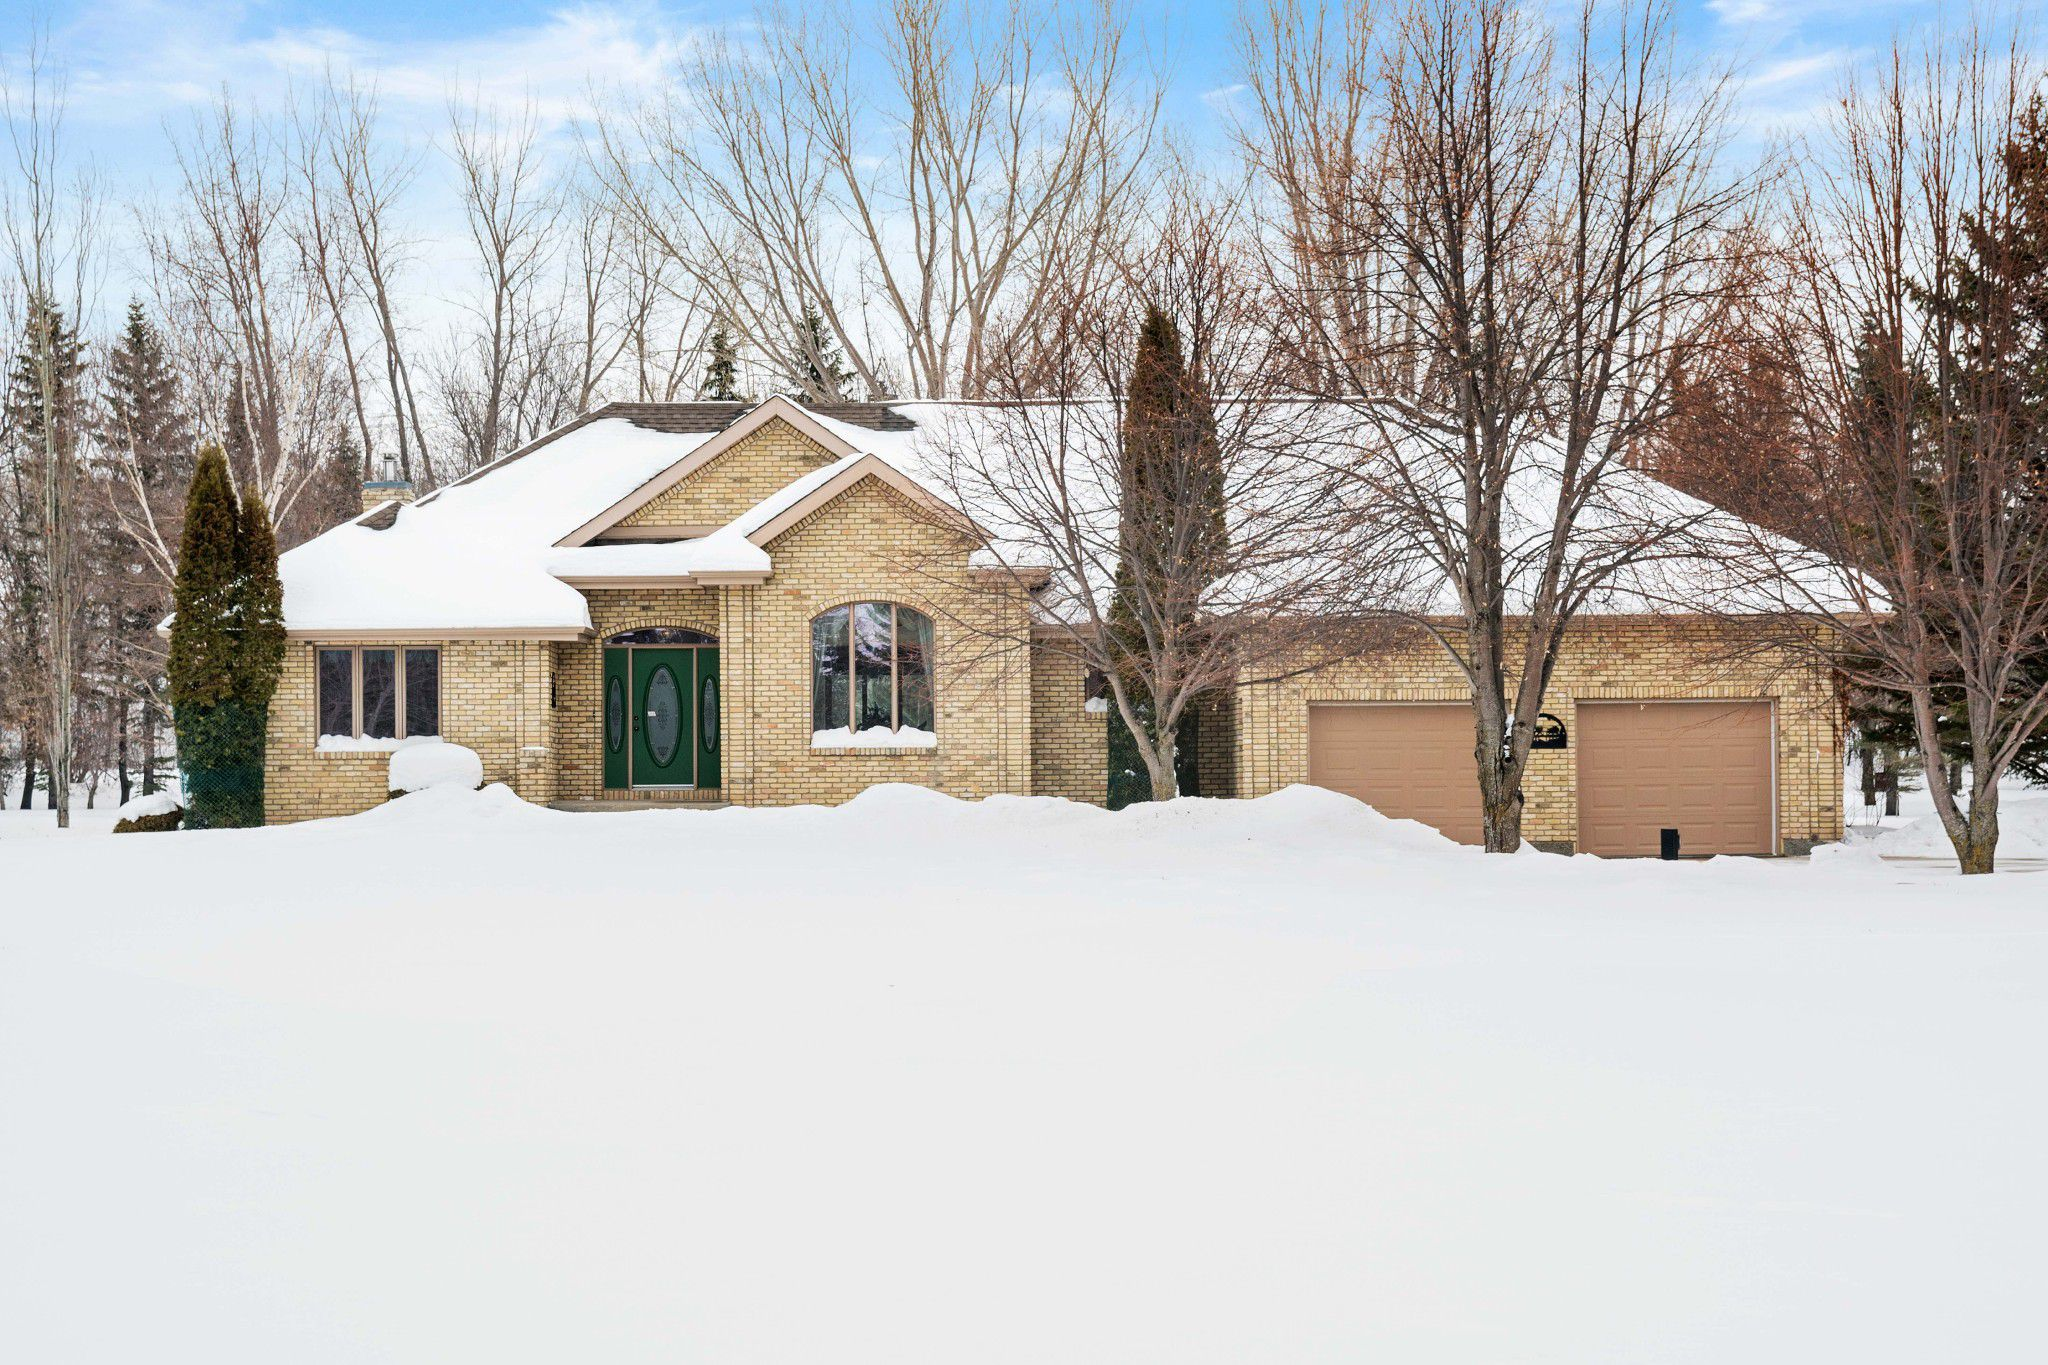 PRIME LOCATION! PRIDE OF OWNERSHIP! Impressive Custom Built 2098 sf Executive Style Bungalow, concrete circle drive, AT2 & DT2/workshop on mature treed park-like 2.5 acre lot.